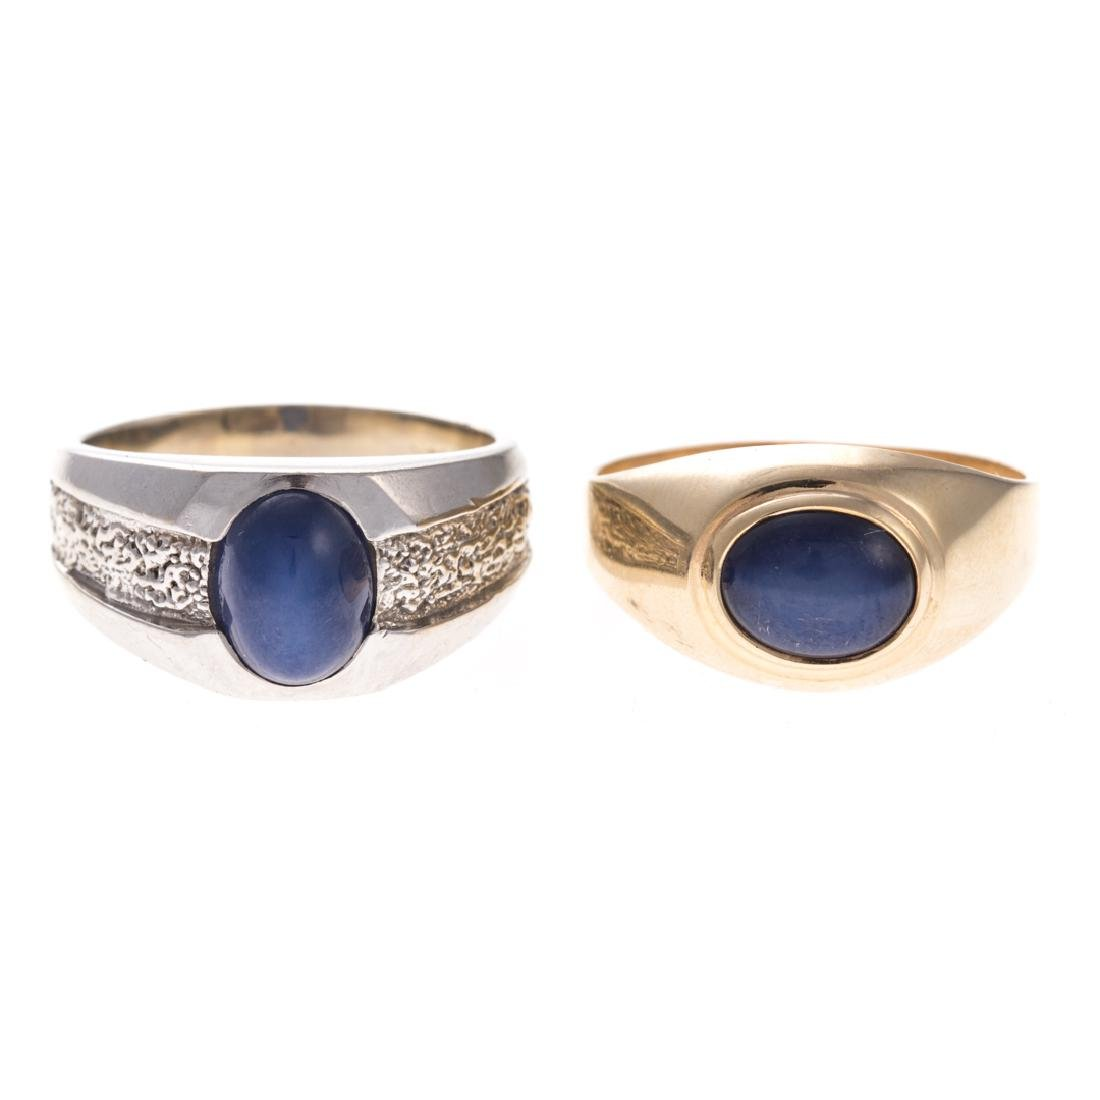 A Pair of Gent's Star Sapphire Rings in Gold